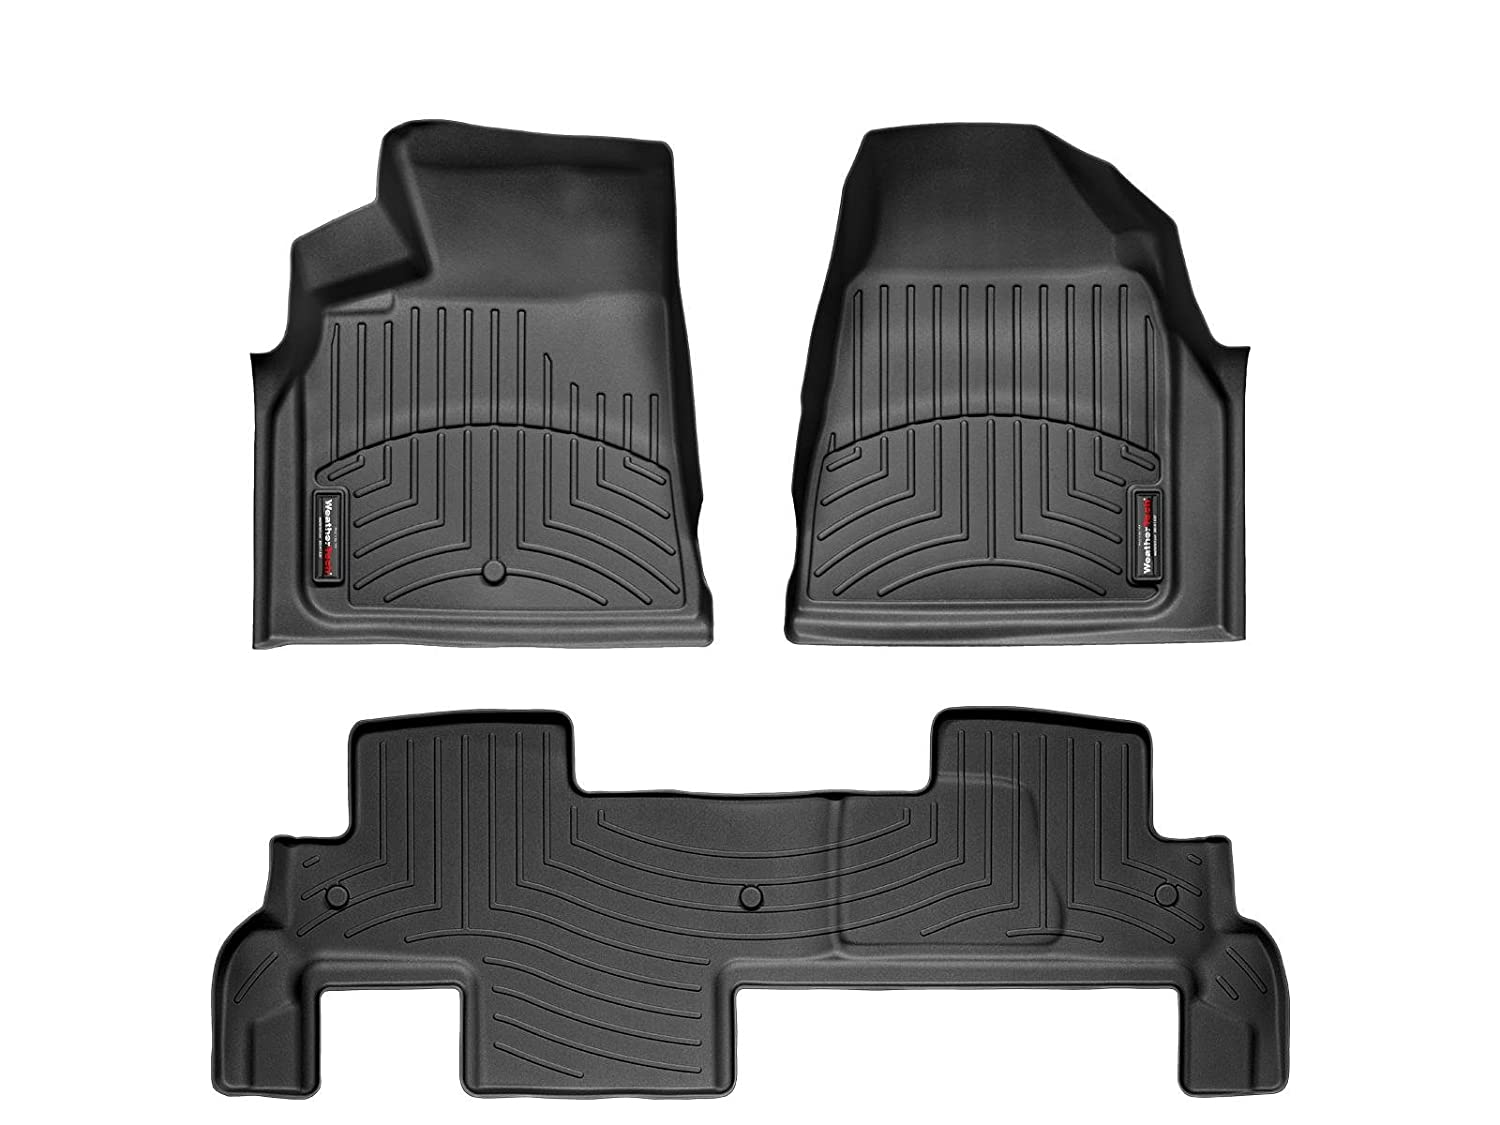 2014 bmw x3 weathertech floor mats - Amazon Com 2009 2016 Chevrolet Traverse Black Weathertech Floor Liner Full Set 1st 2nd Row Bench Seating Automotive